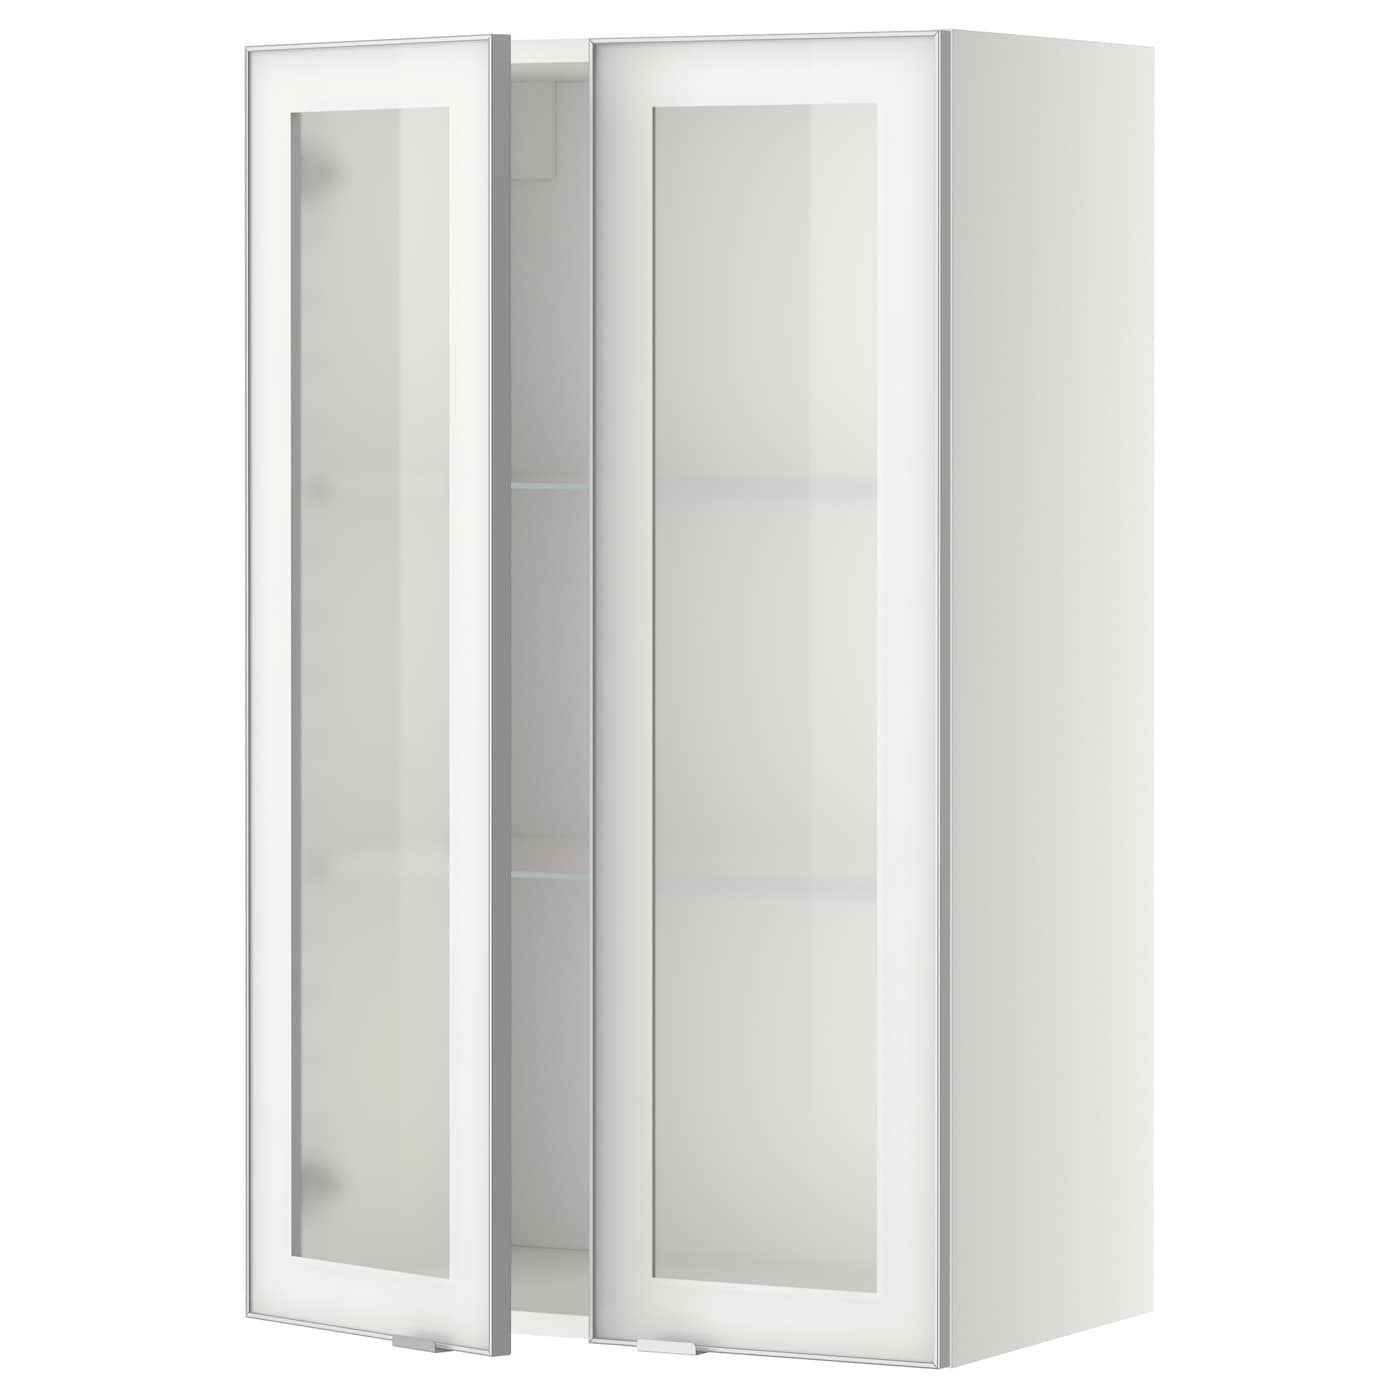 Metod wall cabinet w shelves 2 glass drs white jutis for White kitchen cabinets with frosted glass